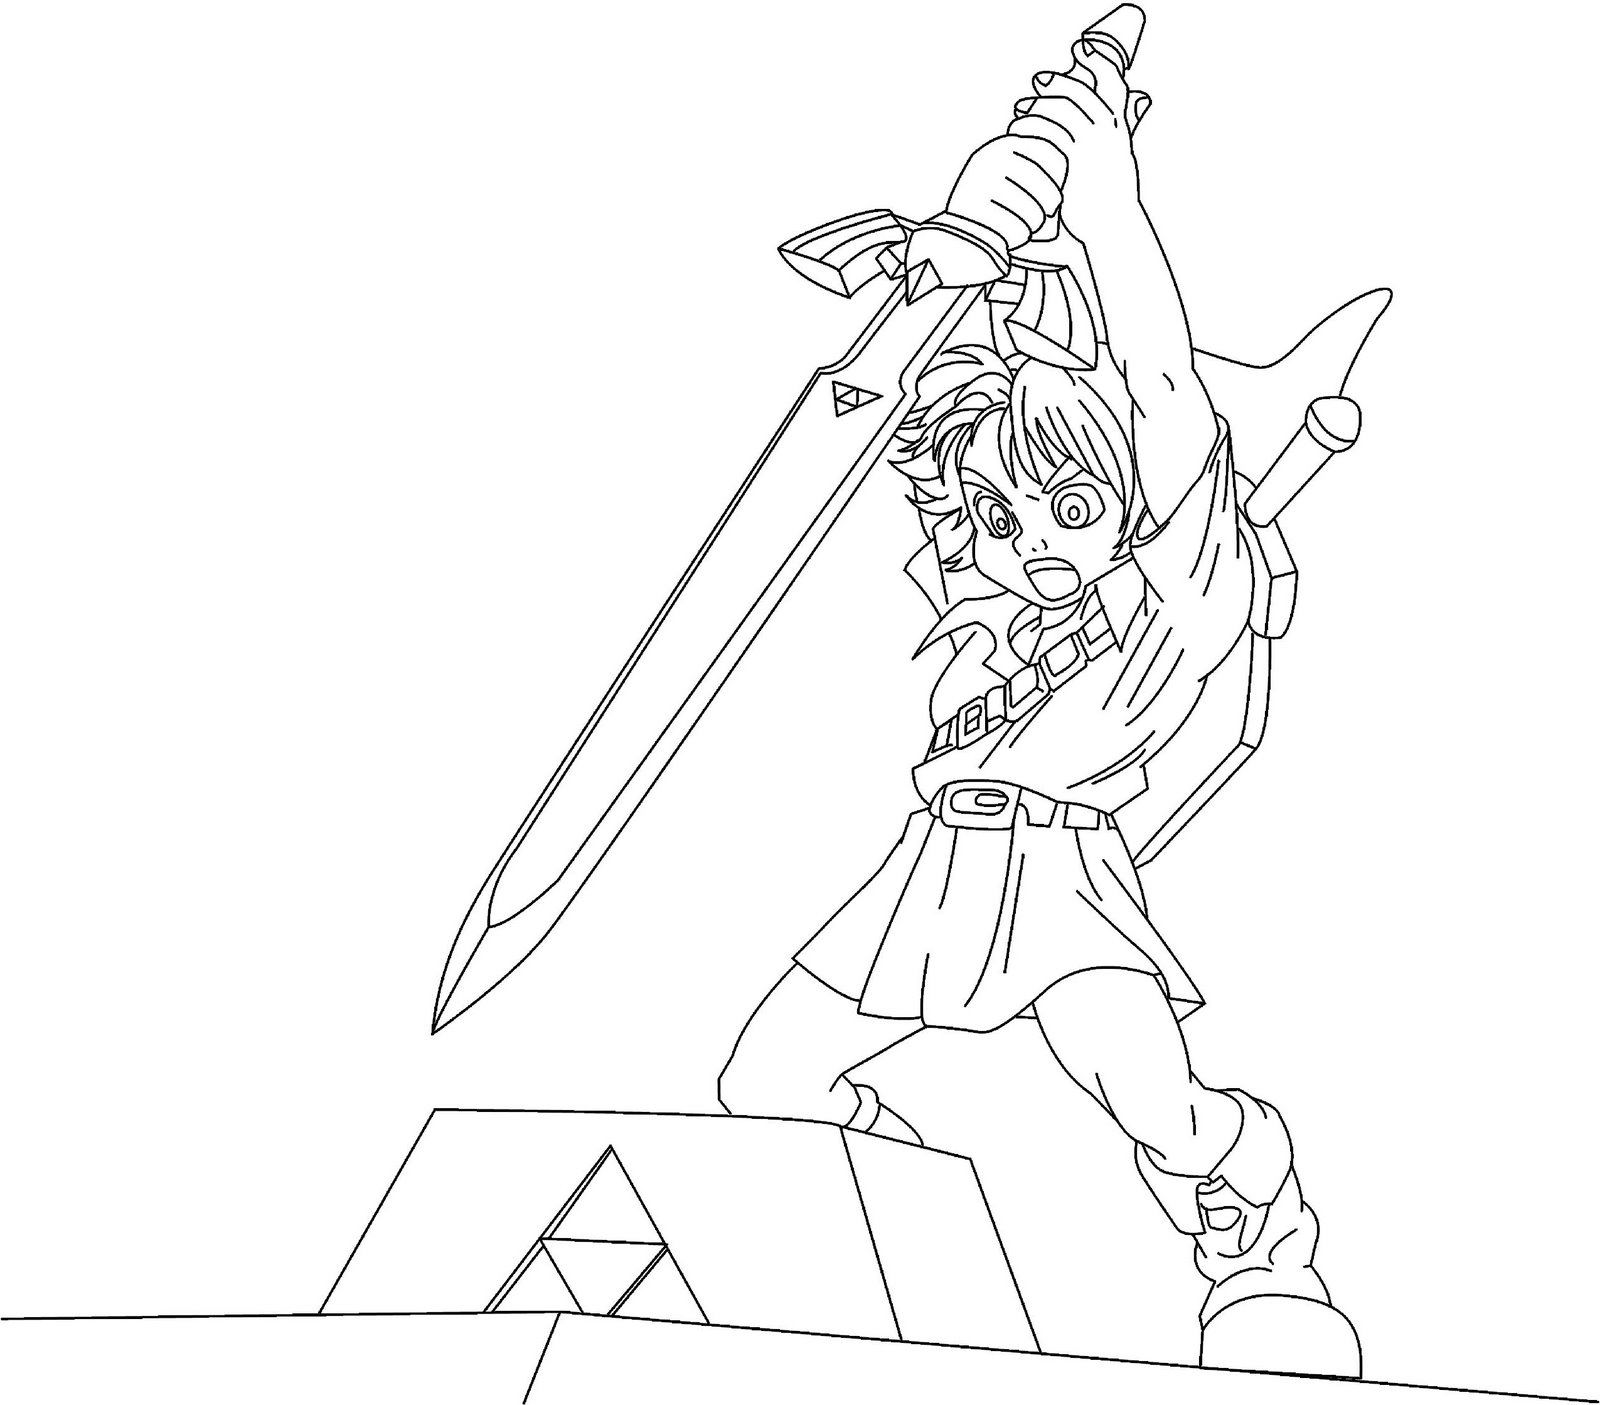 Coloring pages for zelda - Zelda Coloring Pages To Print